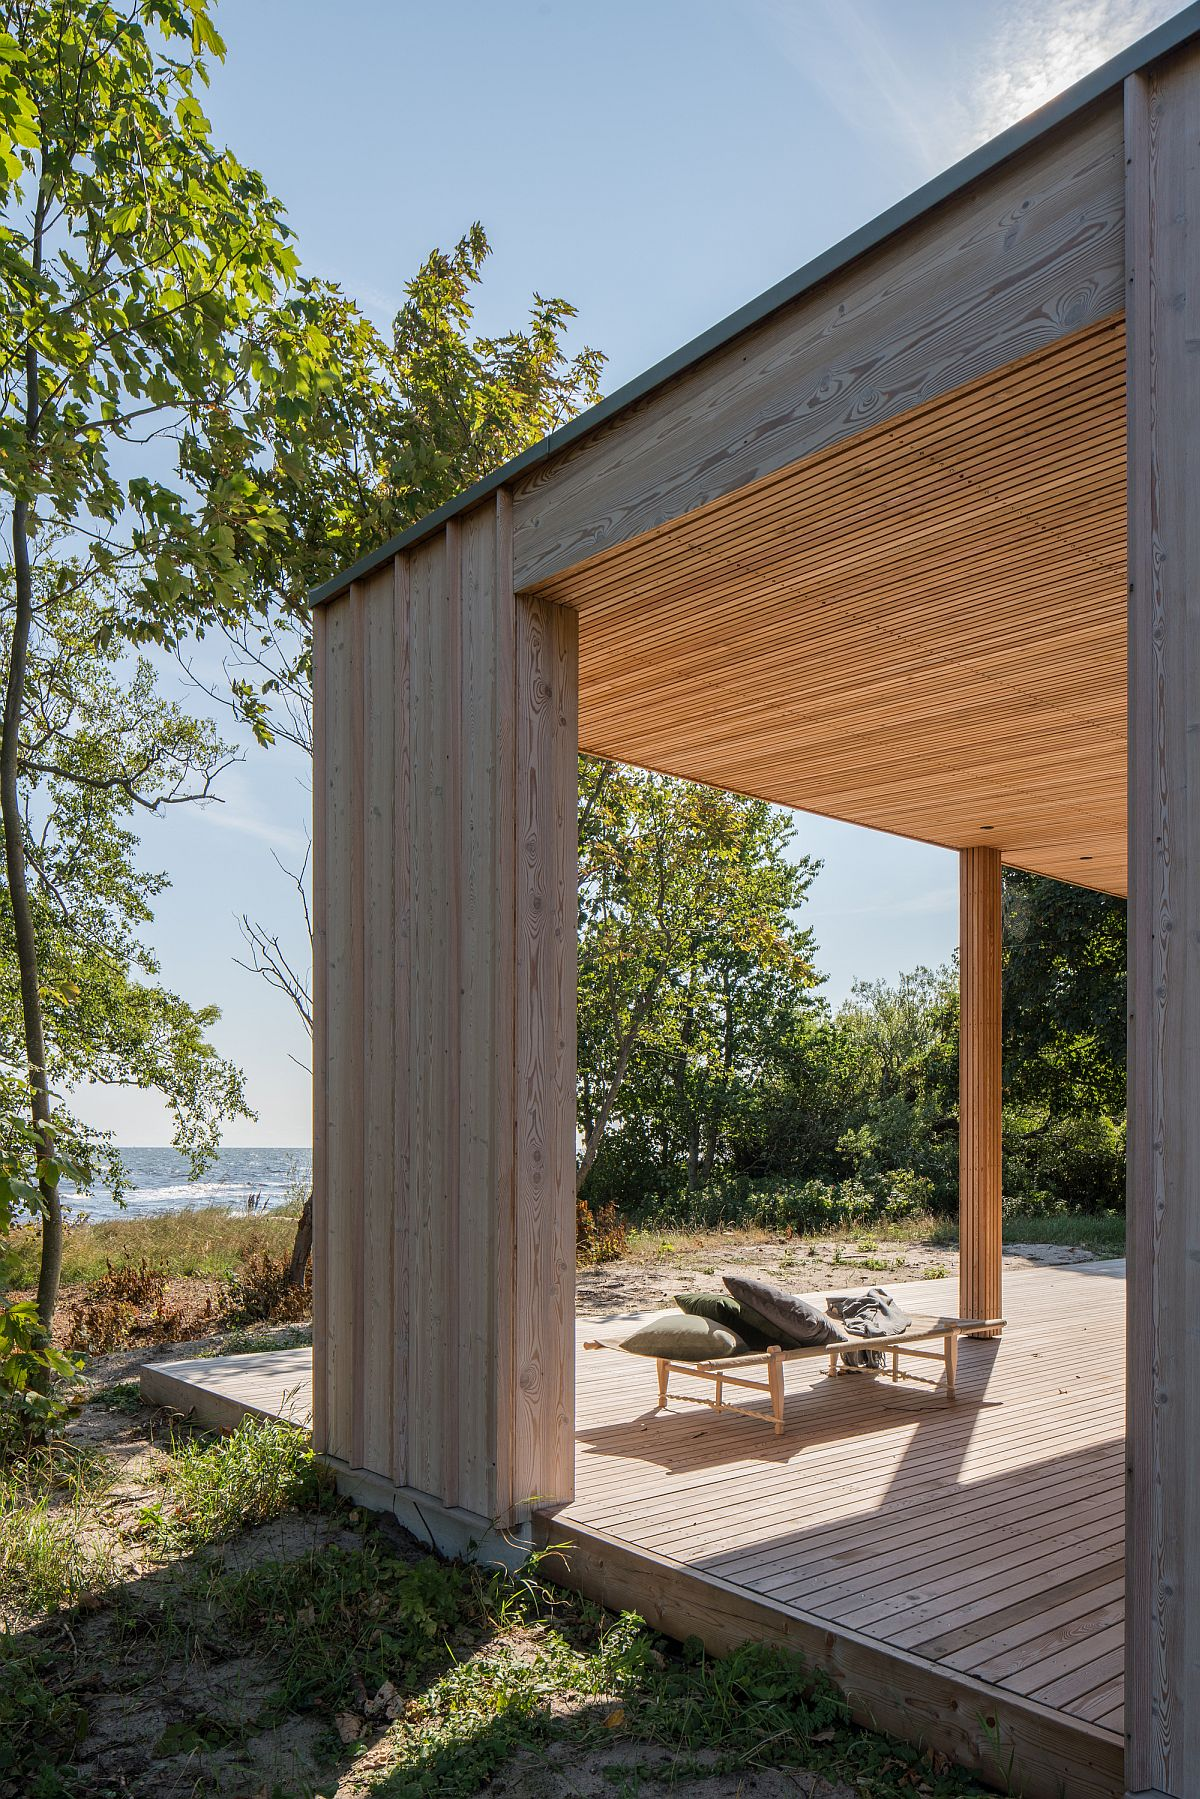 Sun-soaked deck of the house allows the homeowners to enjoy the many sights and sounds next to the baltic sea